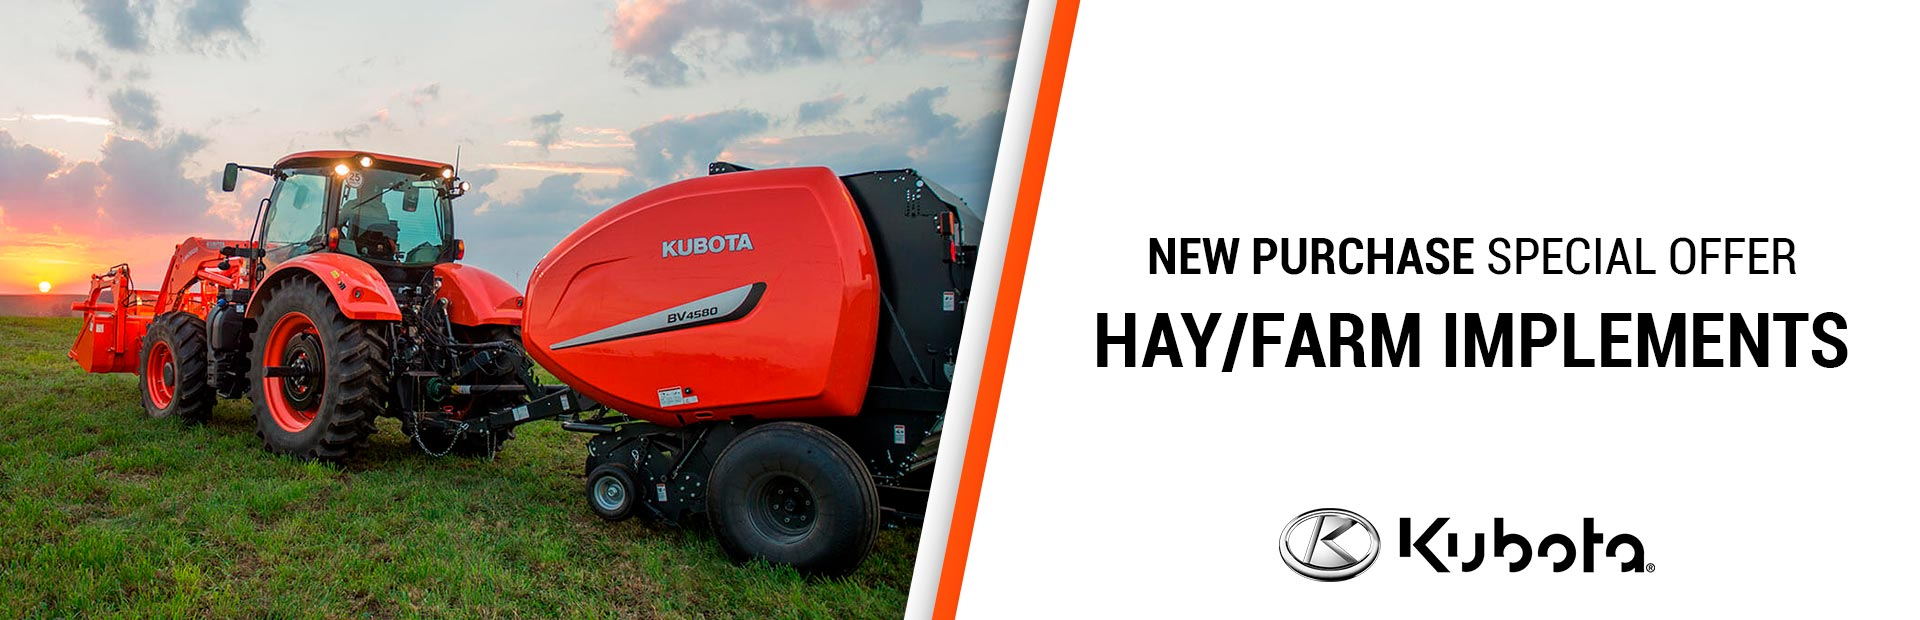 Kubota: New Purchase Special Offers - Hay/Farm Implements